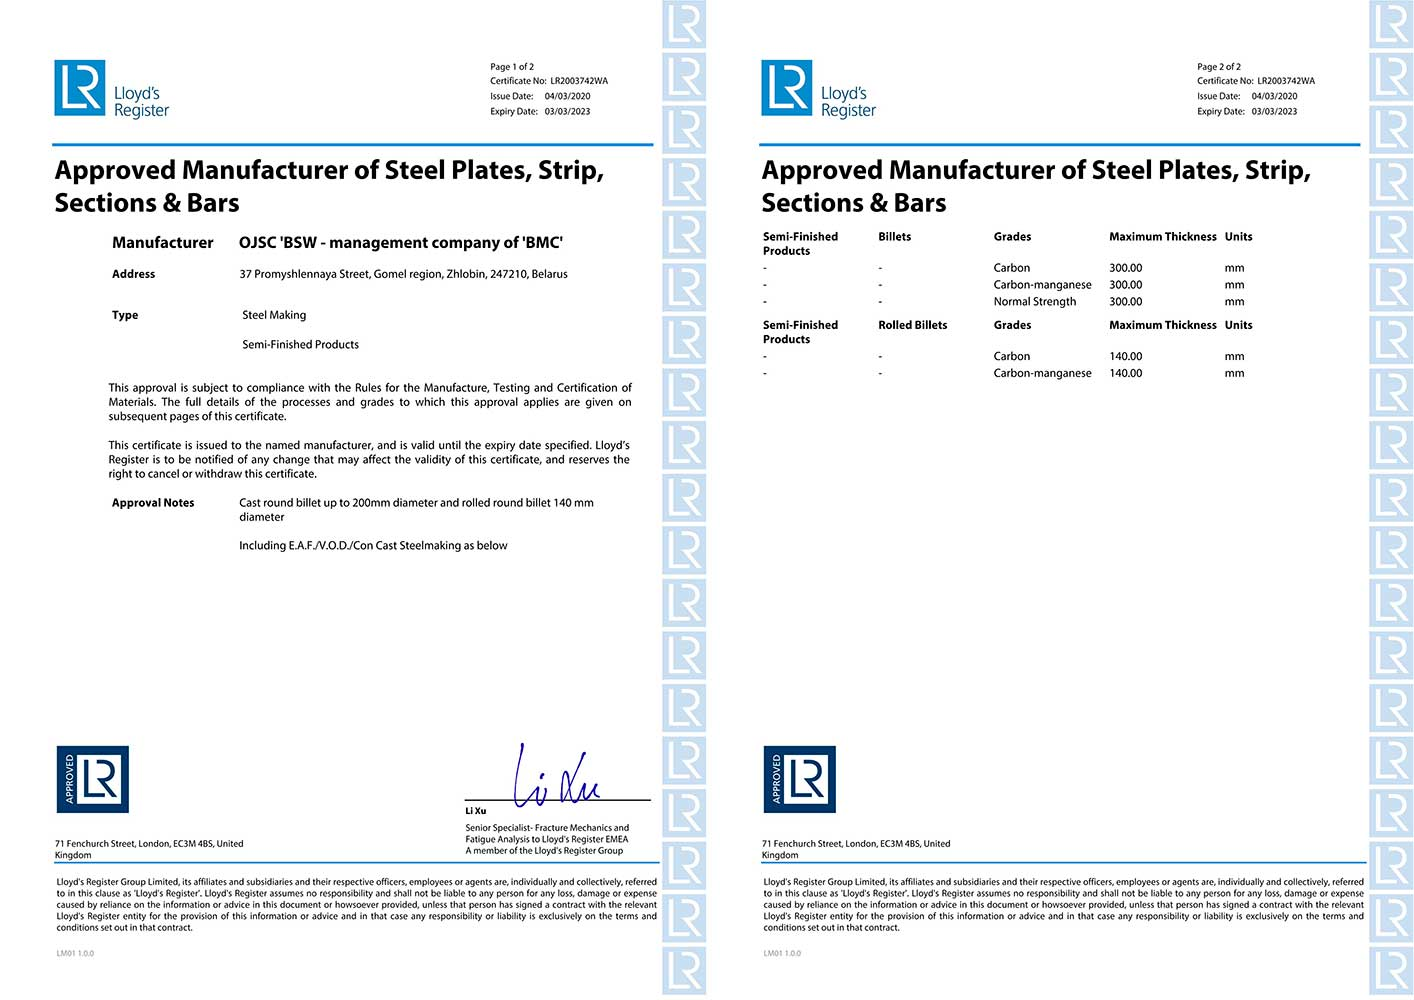 Certificate No. LR2003742WALloyd'sRegisterEMEA(Great Britain) for production of round cast billet from carbon and carbon – manganese steel grades of diameter up to 200 mm and rolled billet of diameter 140 mm from carbon and carbon – manganese steel grades according to the requirements of Lloyd's Register Rules.